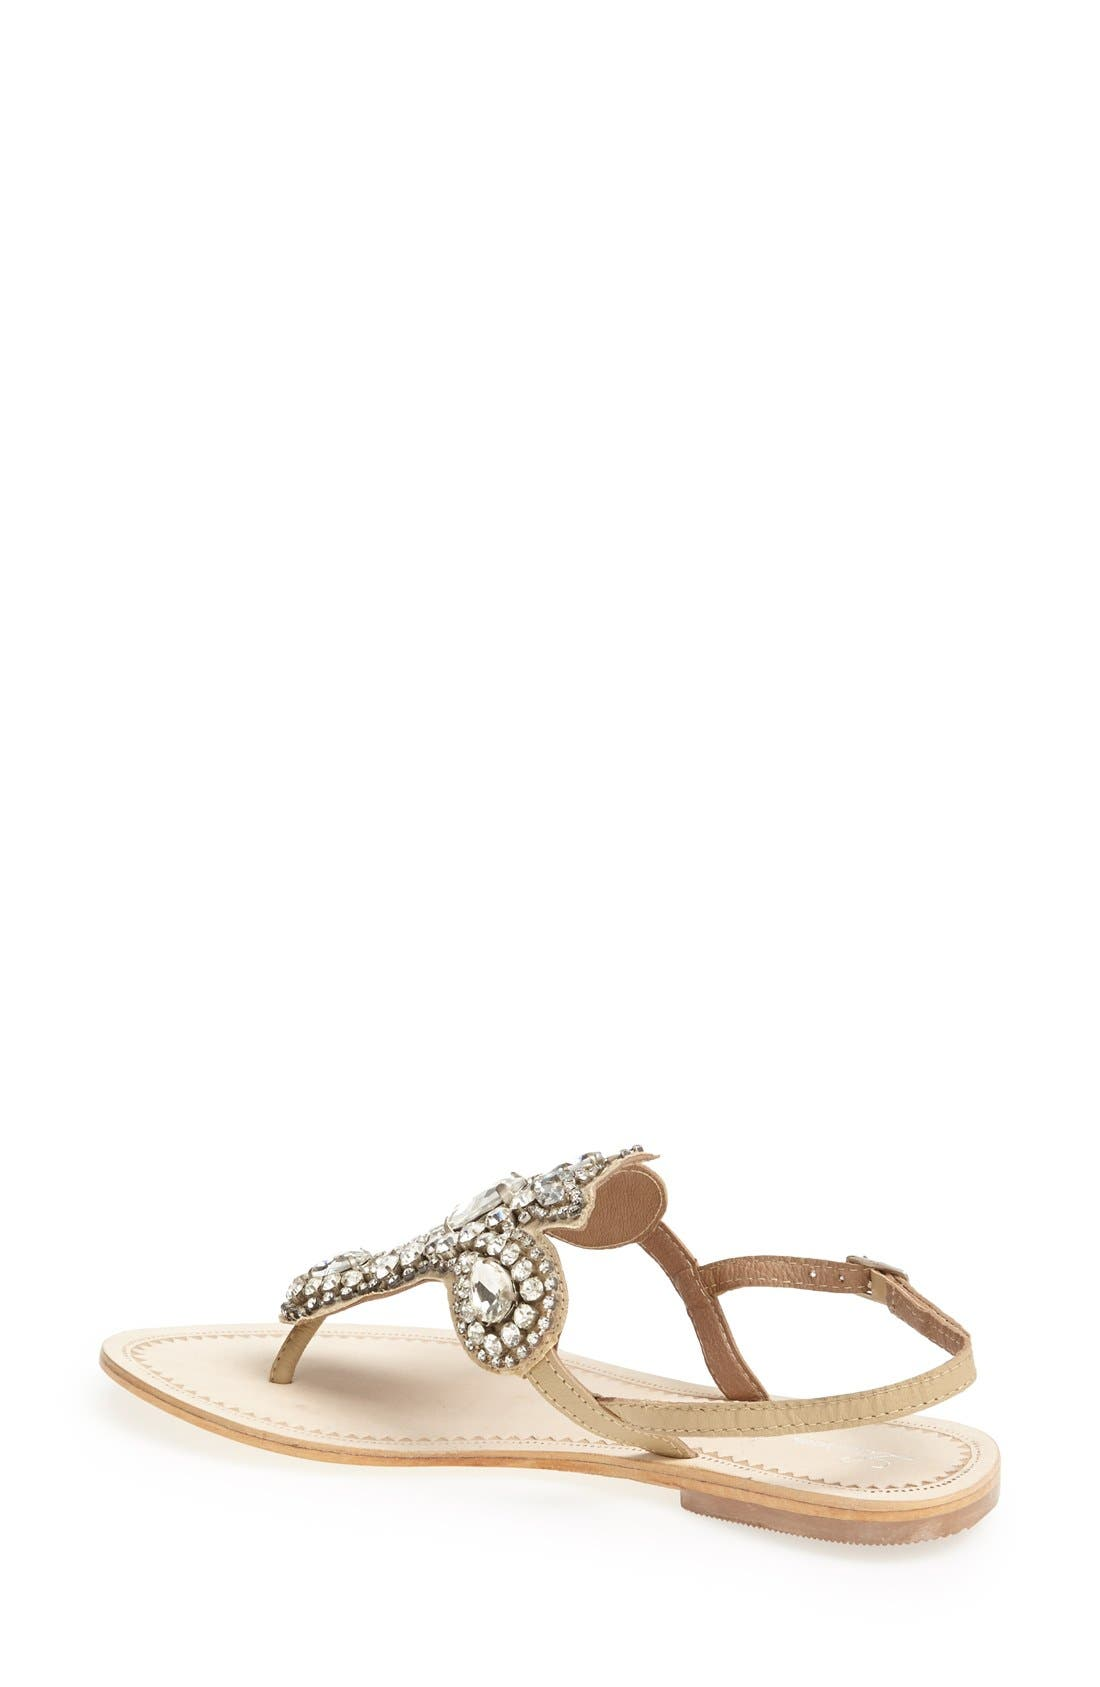 Alternate Image 2  - Lauren Lorraine 'Ibiza' Crystal Thong Sandal (Women)